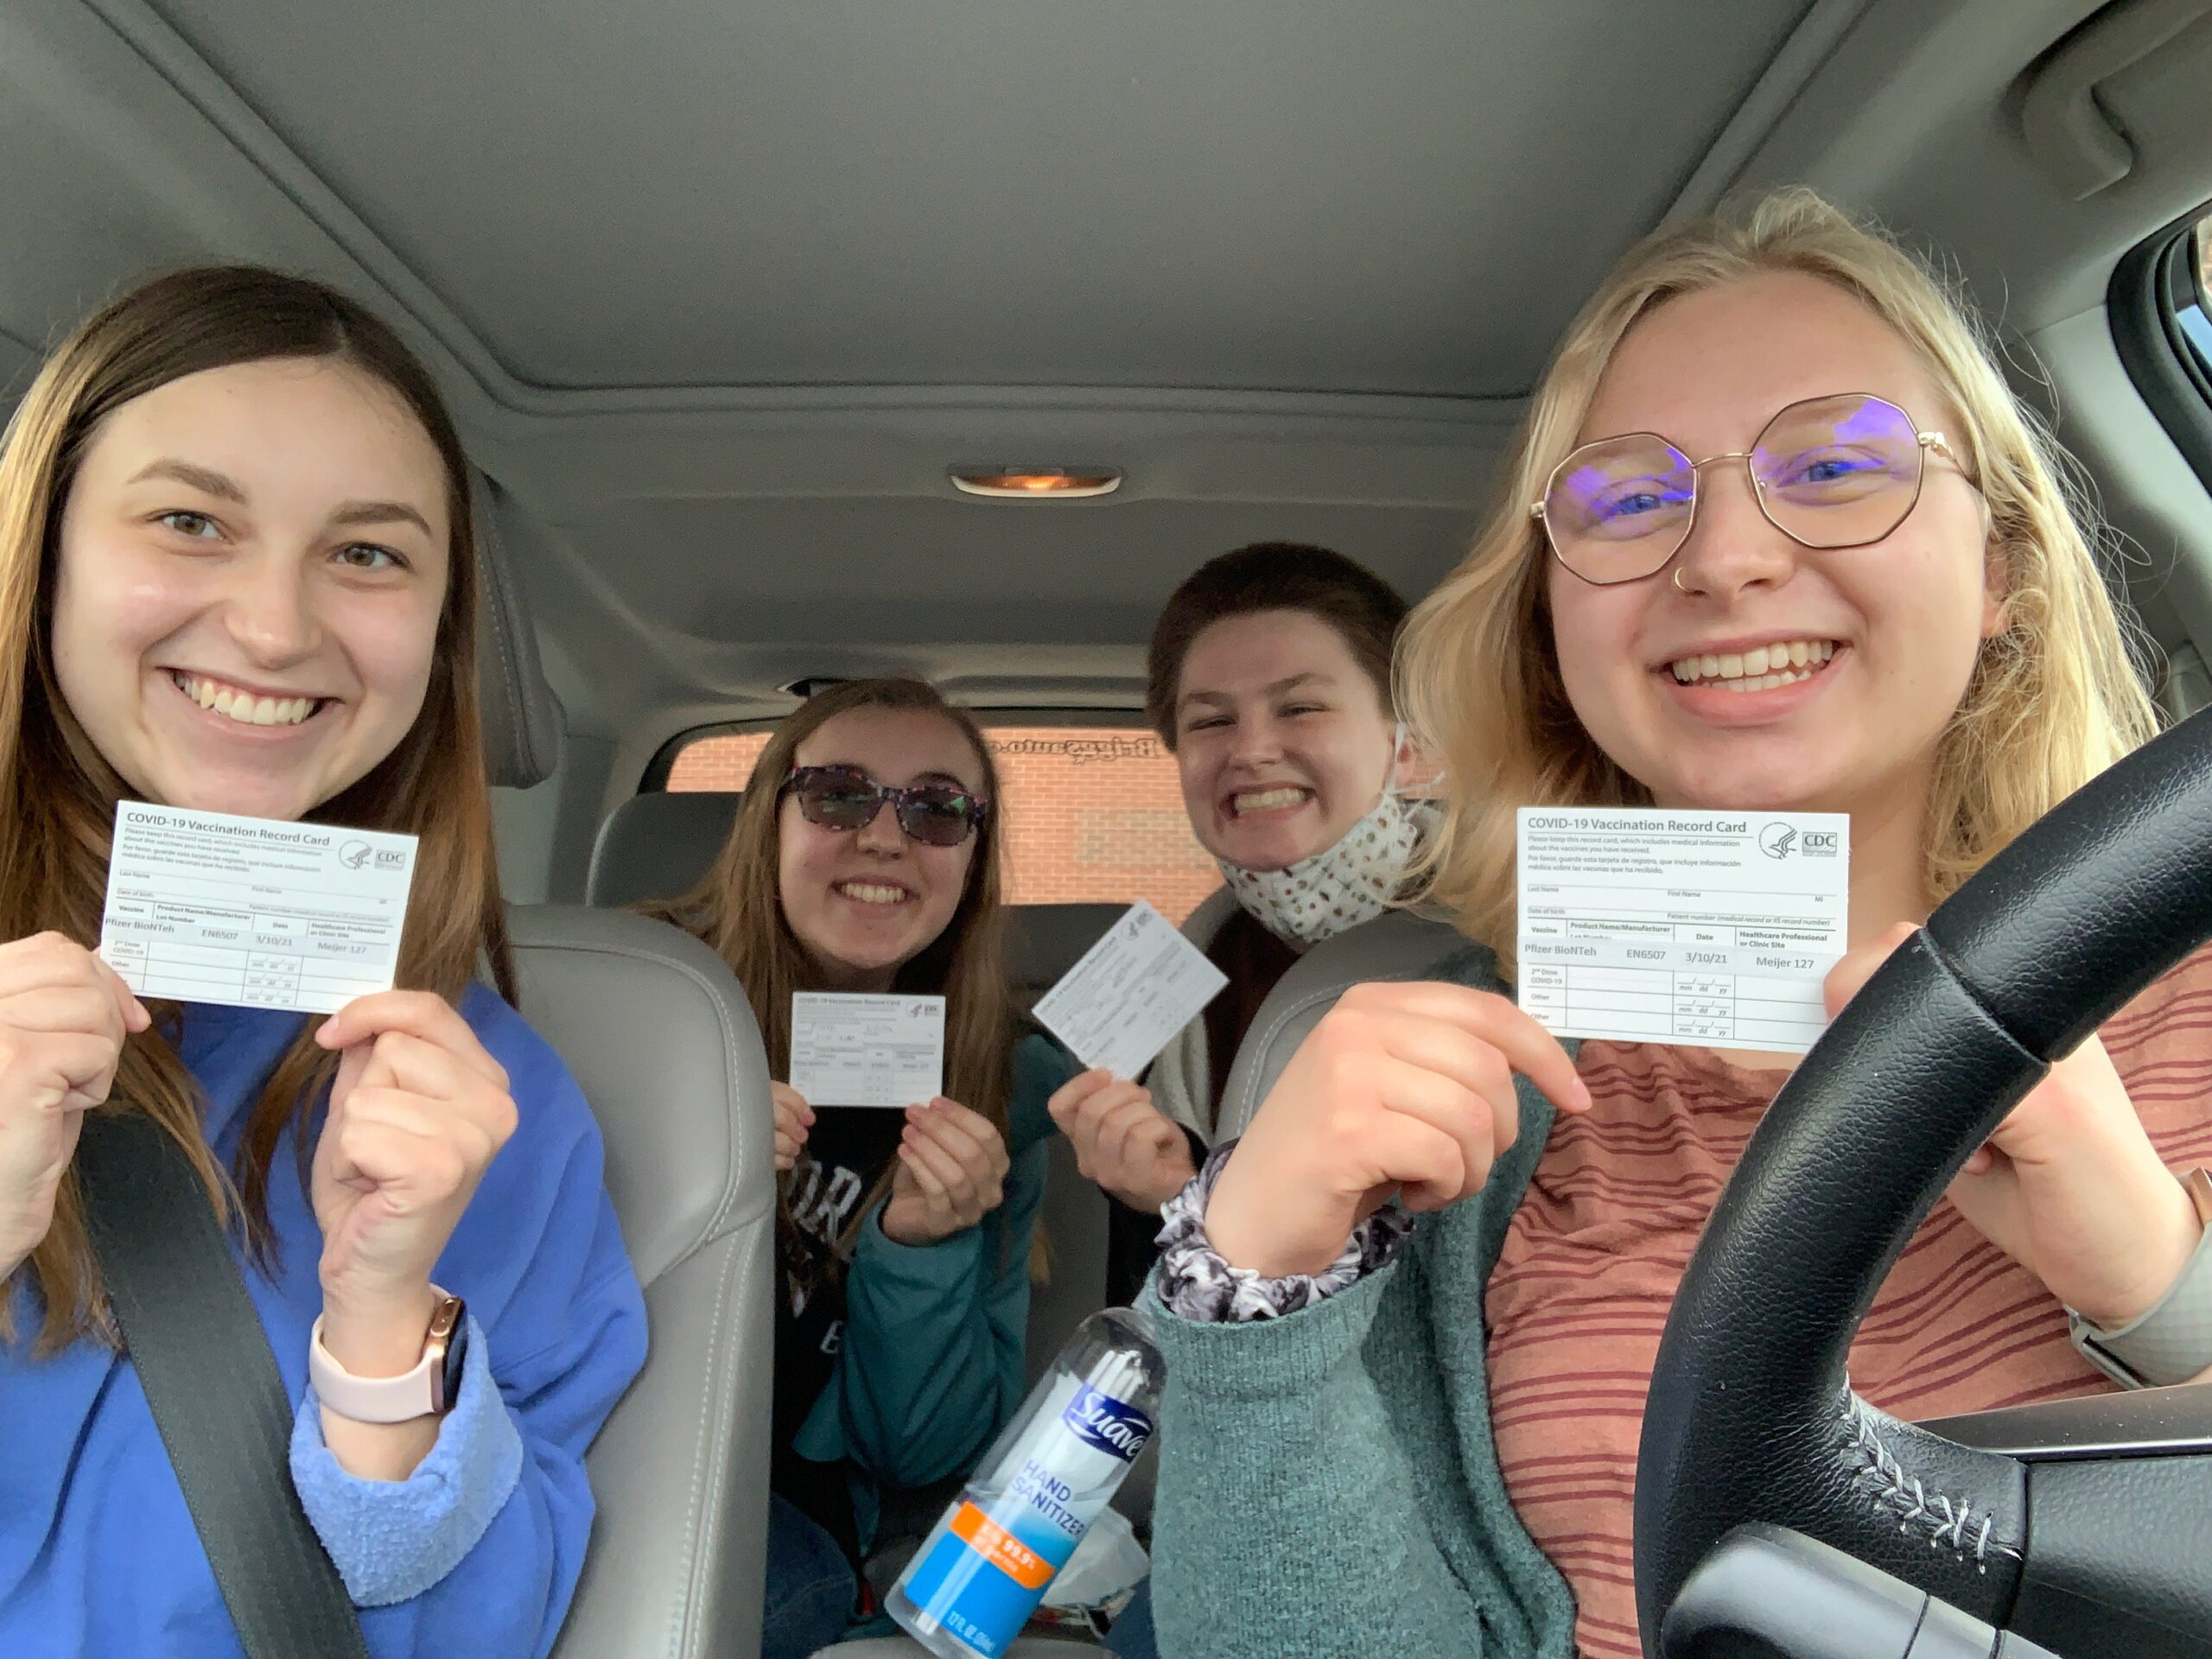 Students show off their new vaccination cards